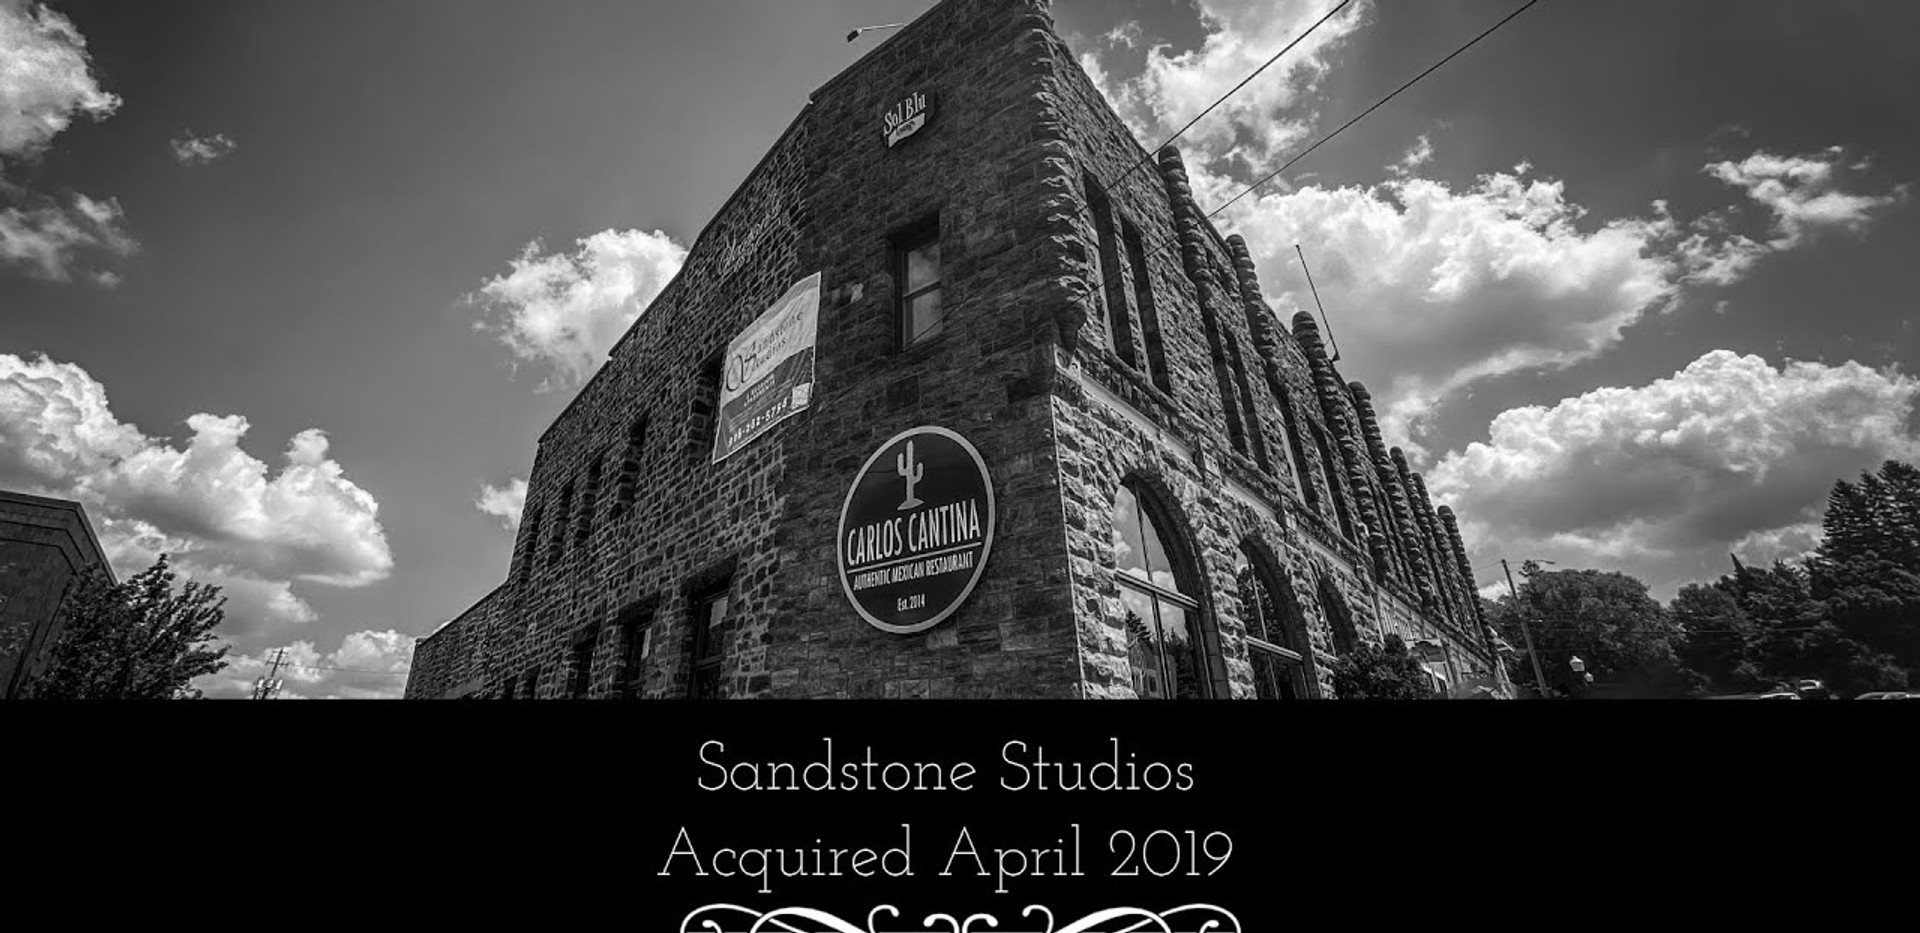 Sandstone Studios (Iron Mountain, MI)